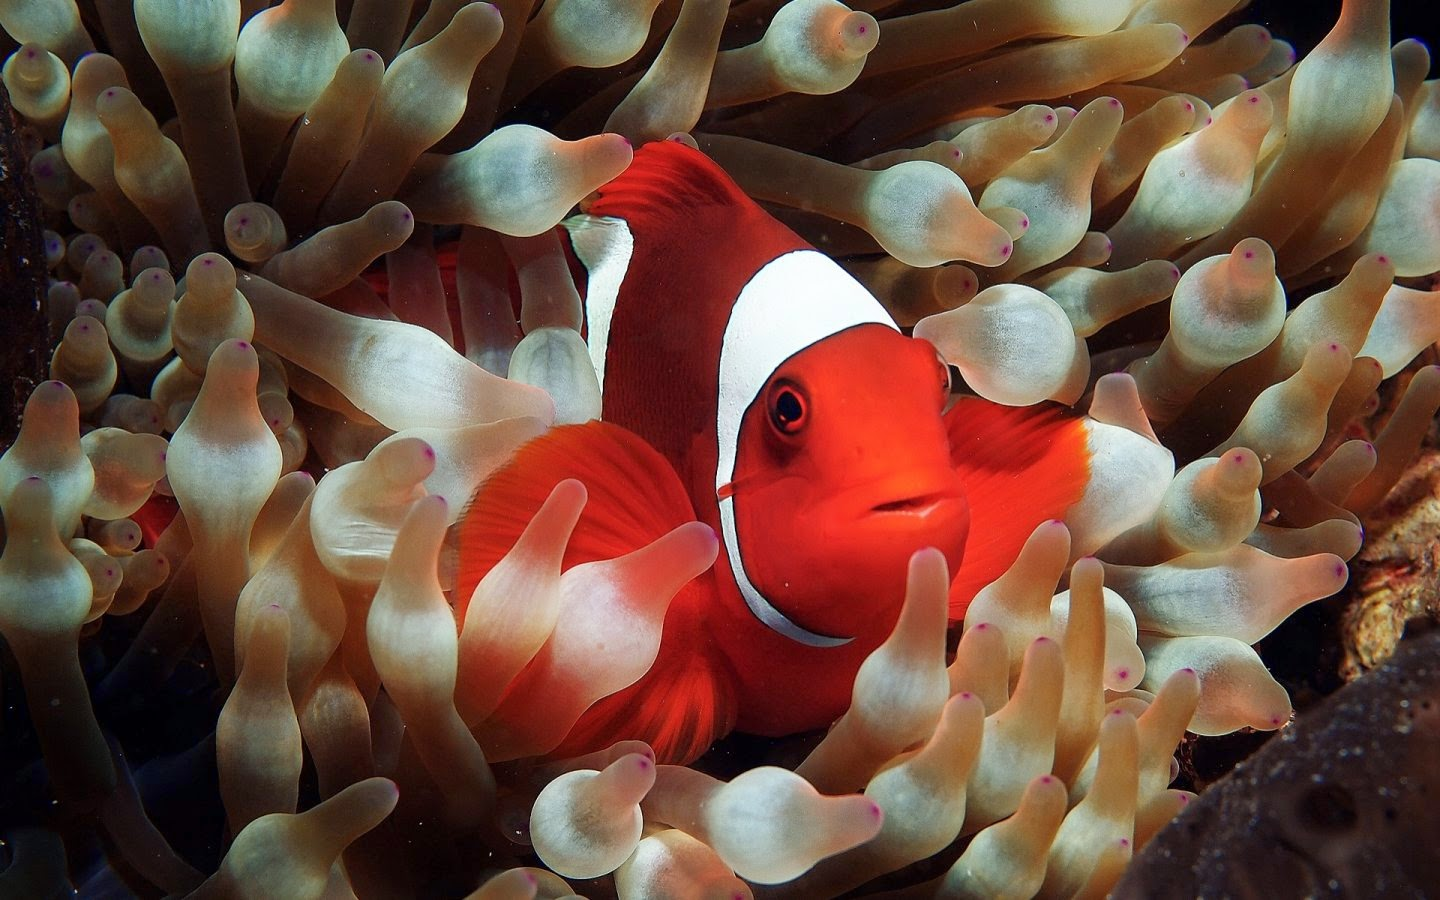 Nature Wallpaper - Best Nature Wallpapers: Clown fish ...